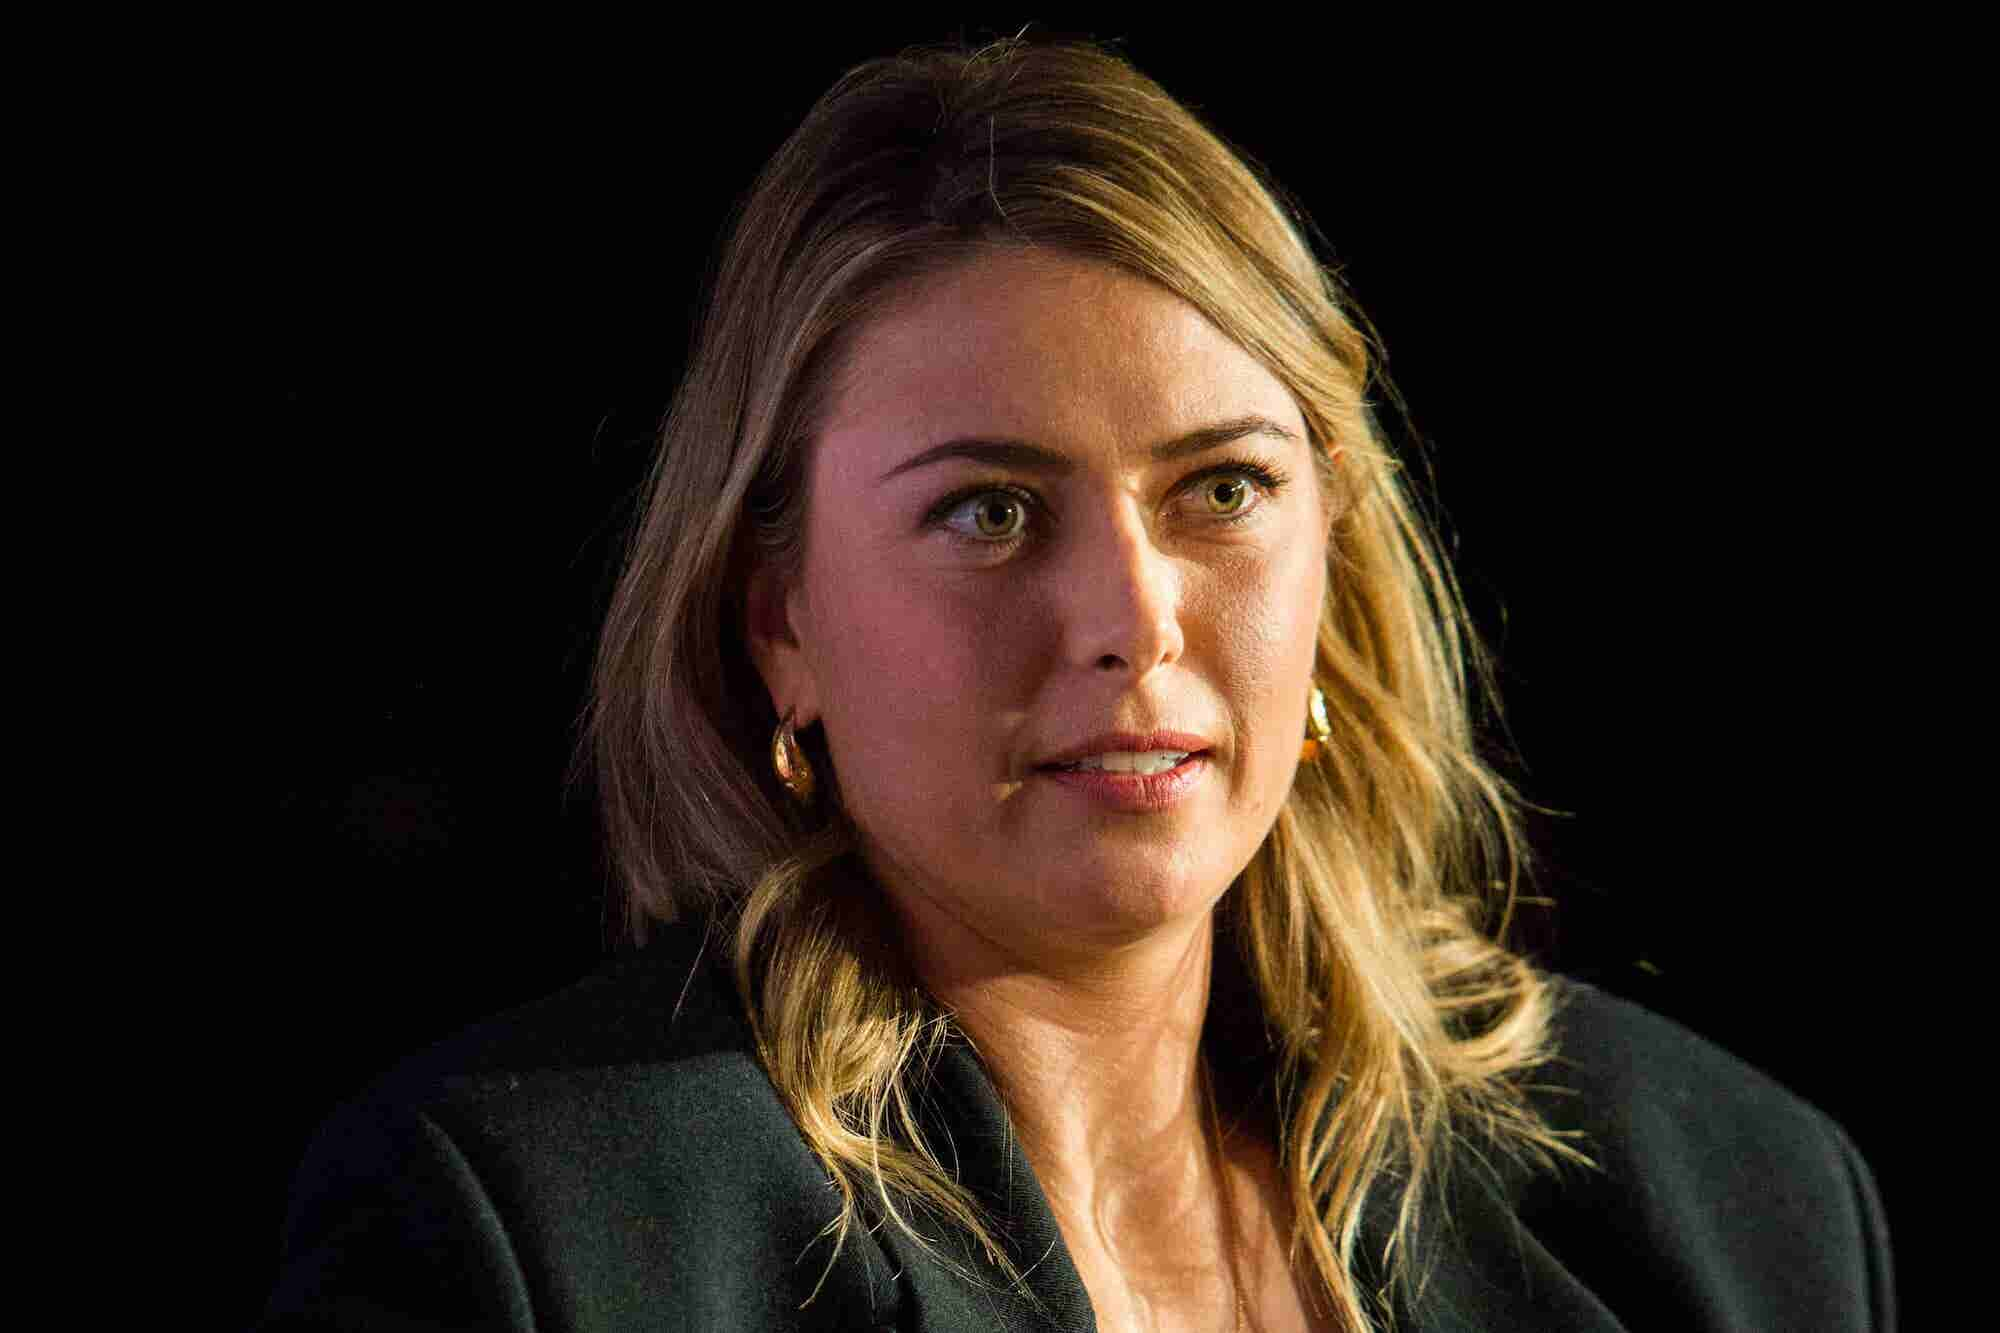 Maria Sharapova on Building Her Brand and Businesses